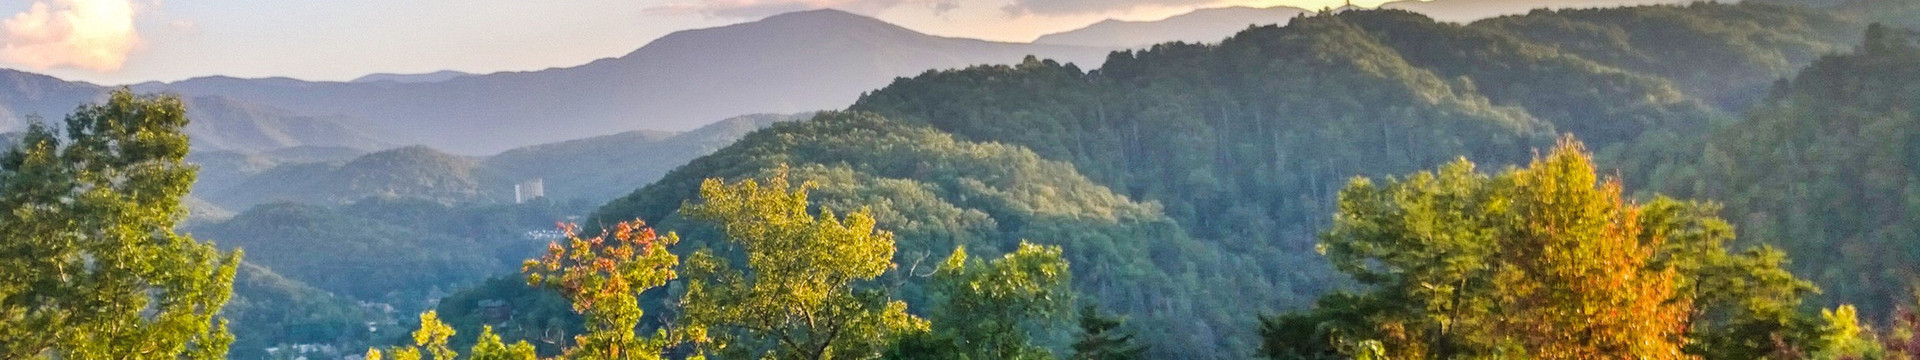 Gatlinburg Resort near the Smoky Mountains | Mountain View